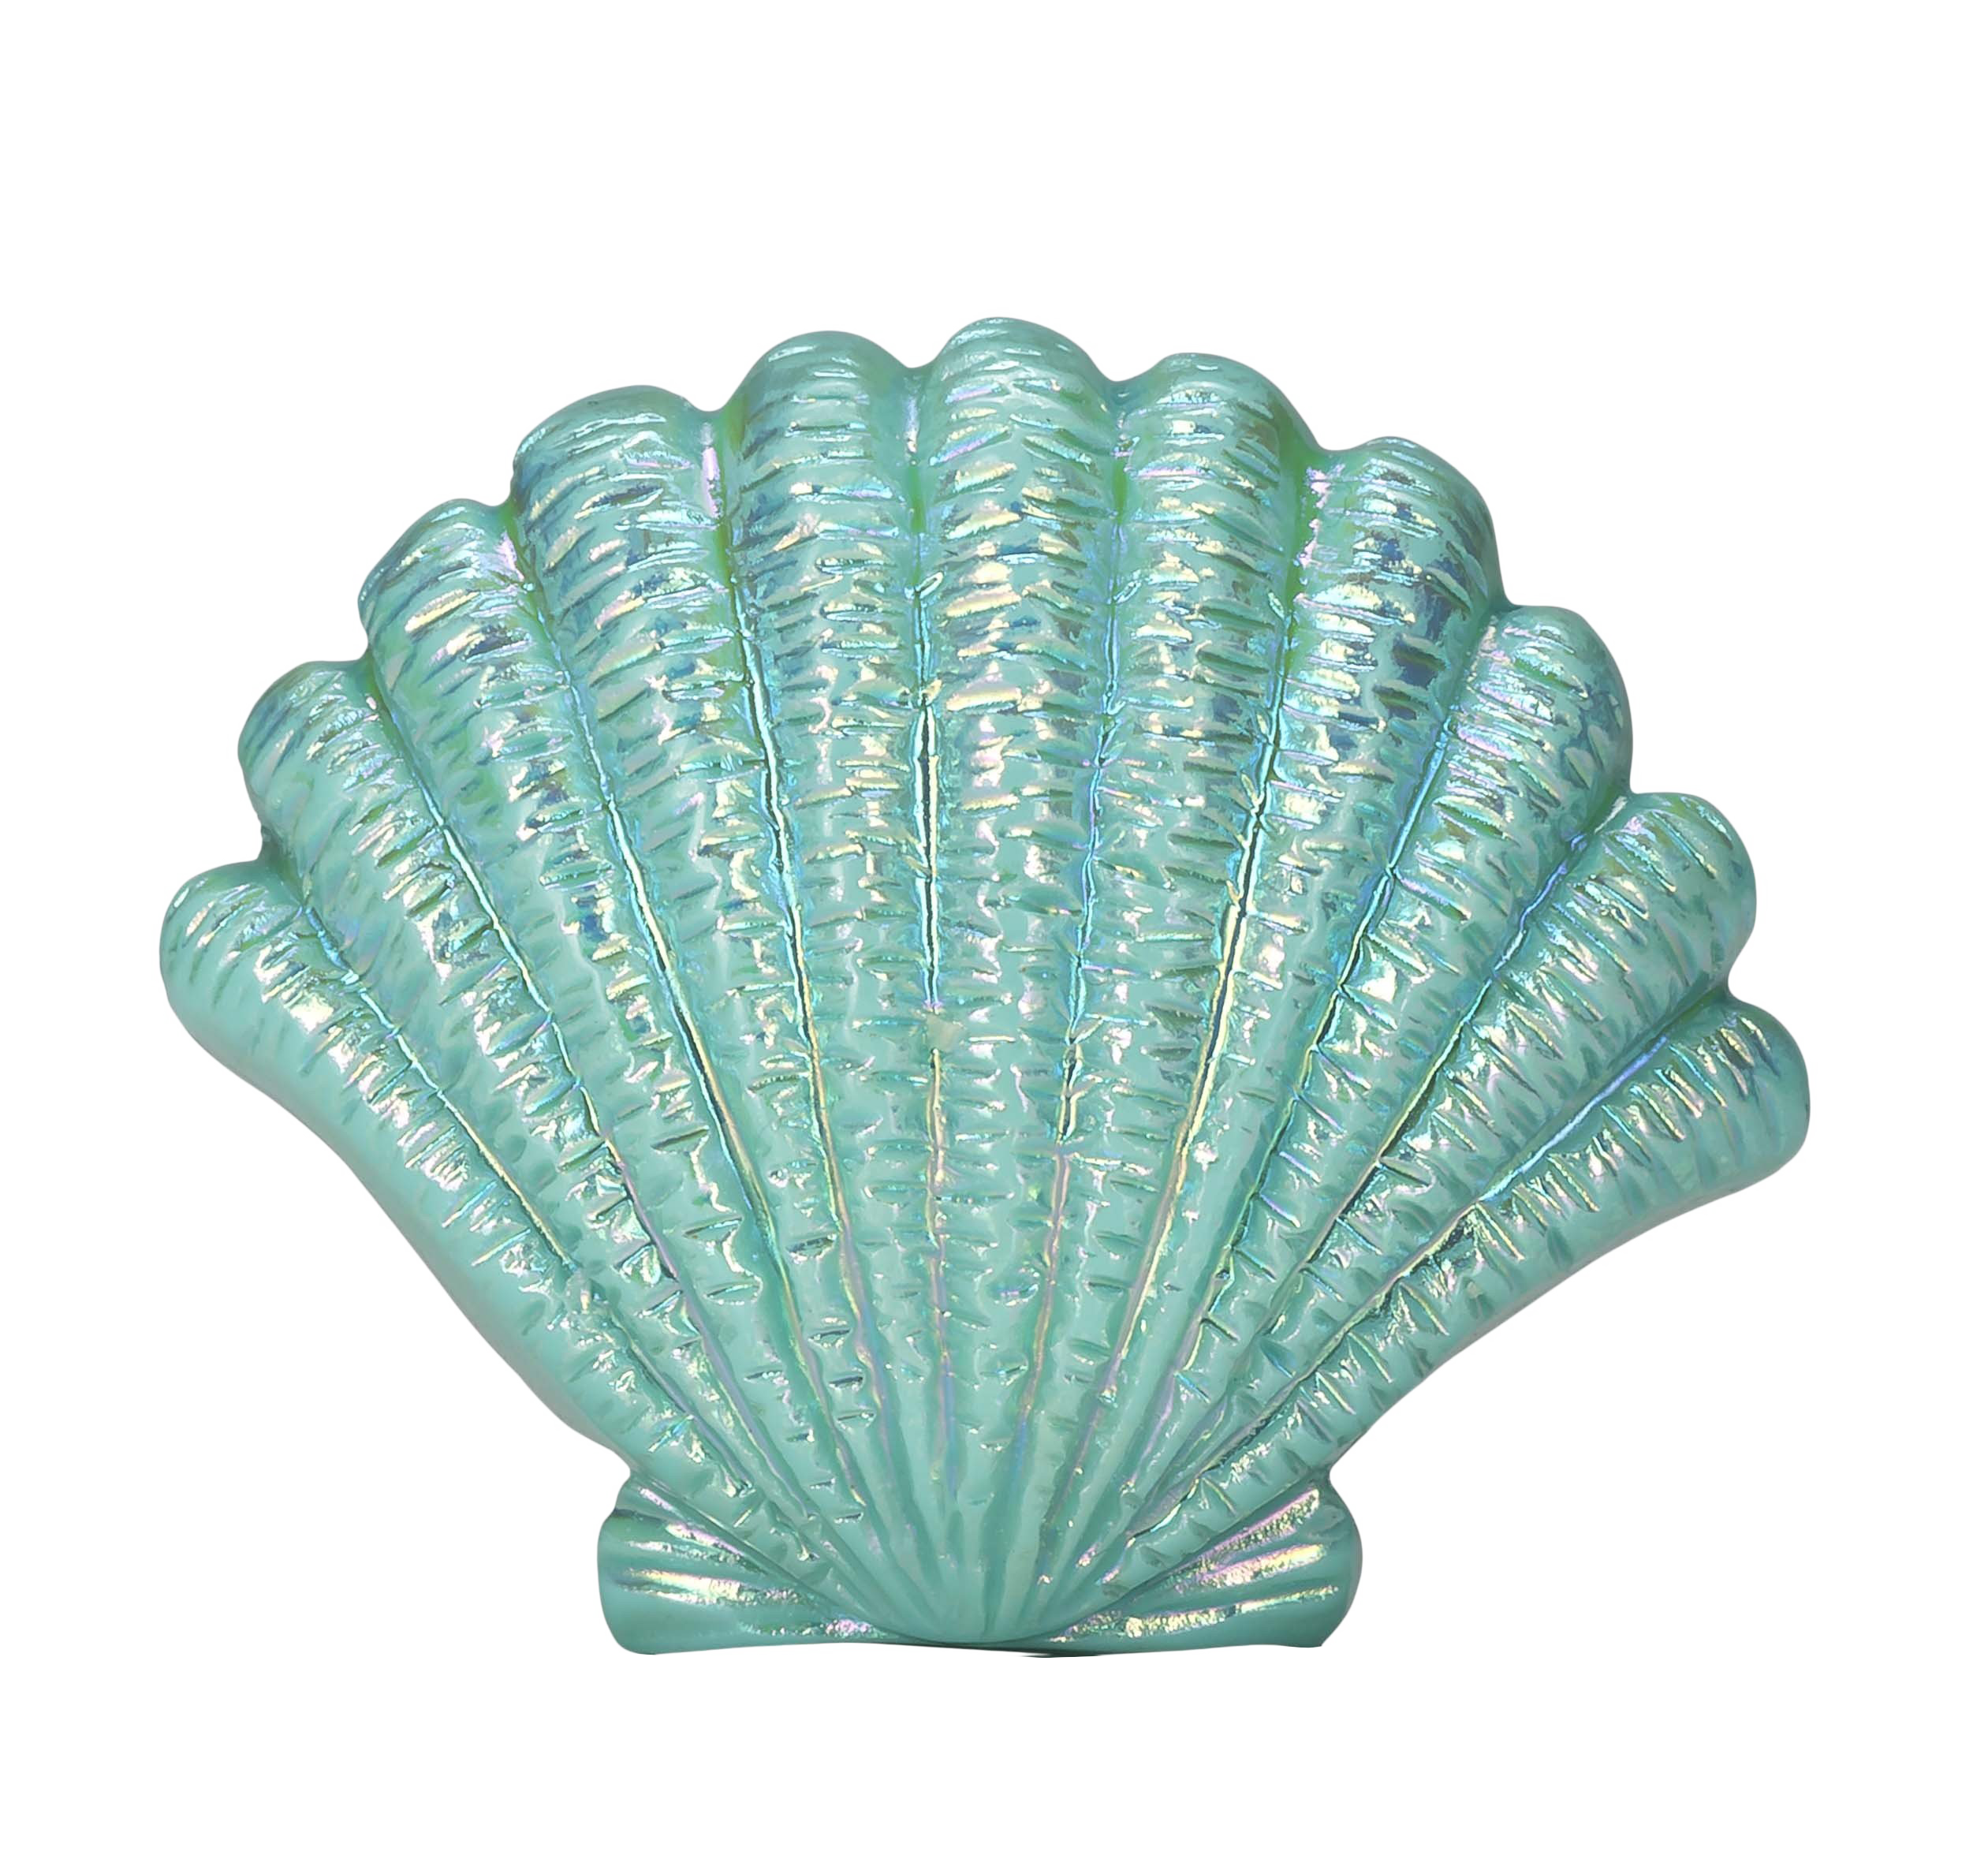 Shell clipart blue sea. Seashell png image purepng